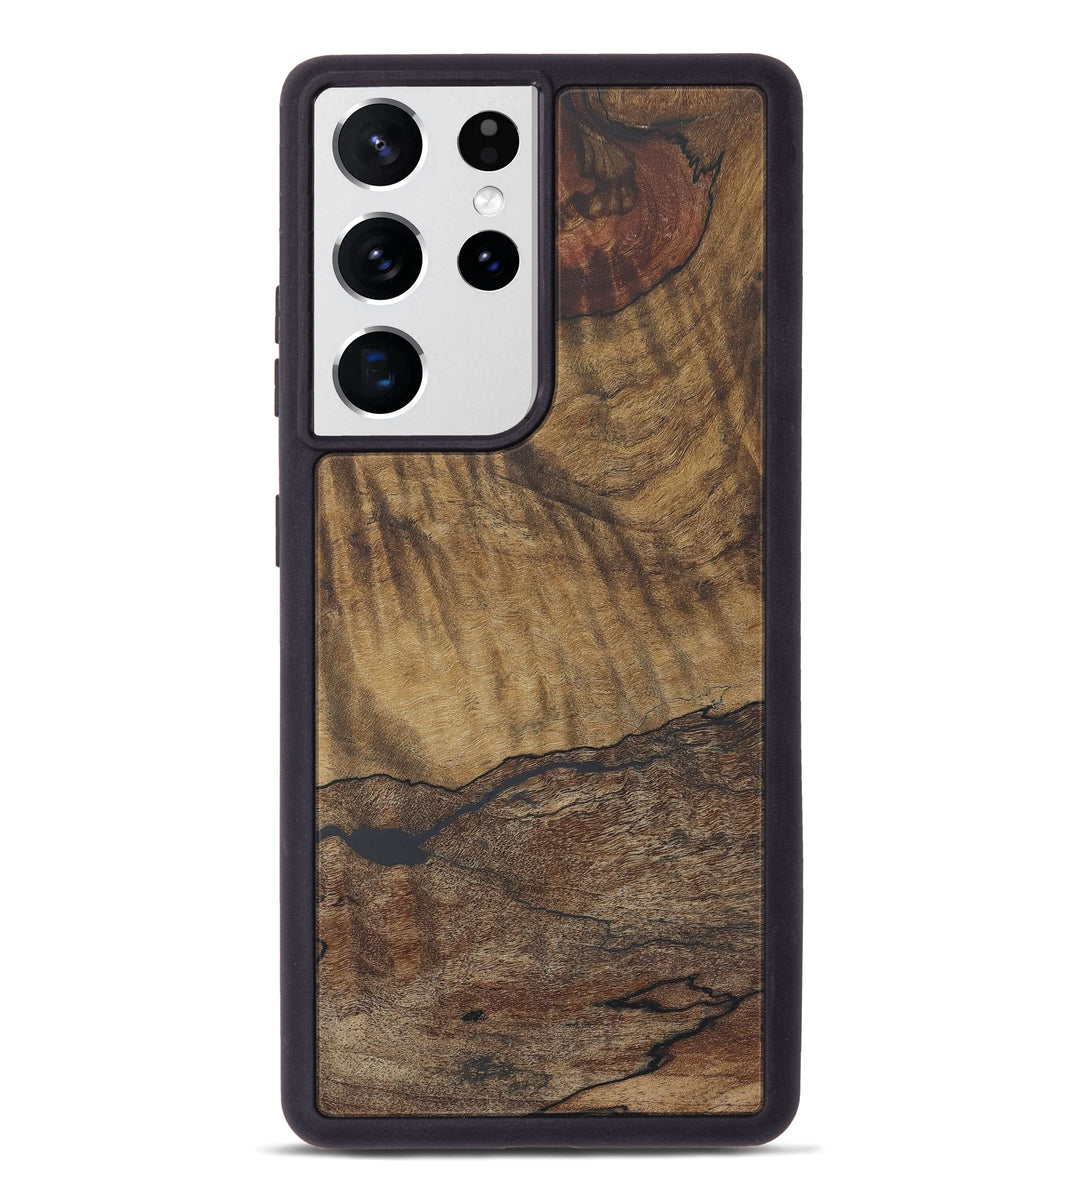 Galaxy S21 Ultra Burl Wood Phone Case - Cathryn (Maple Burl, 408428)